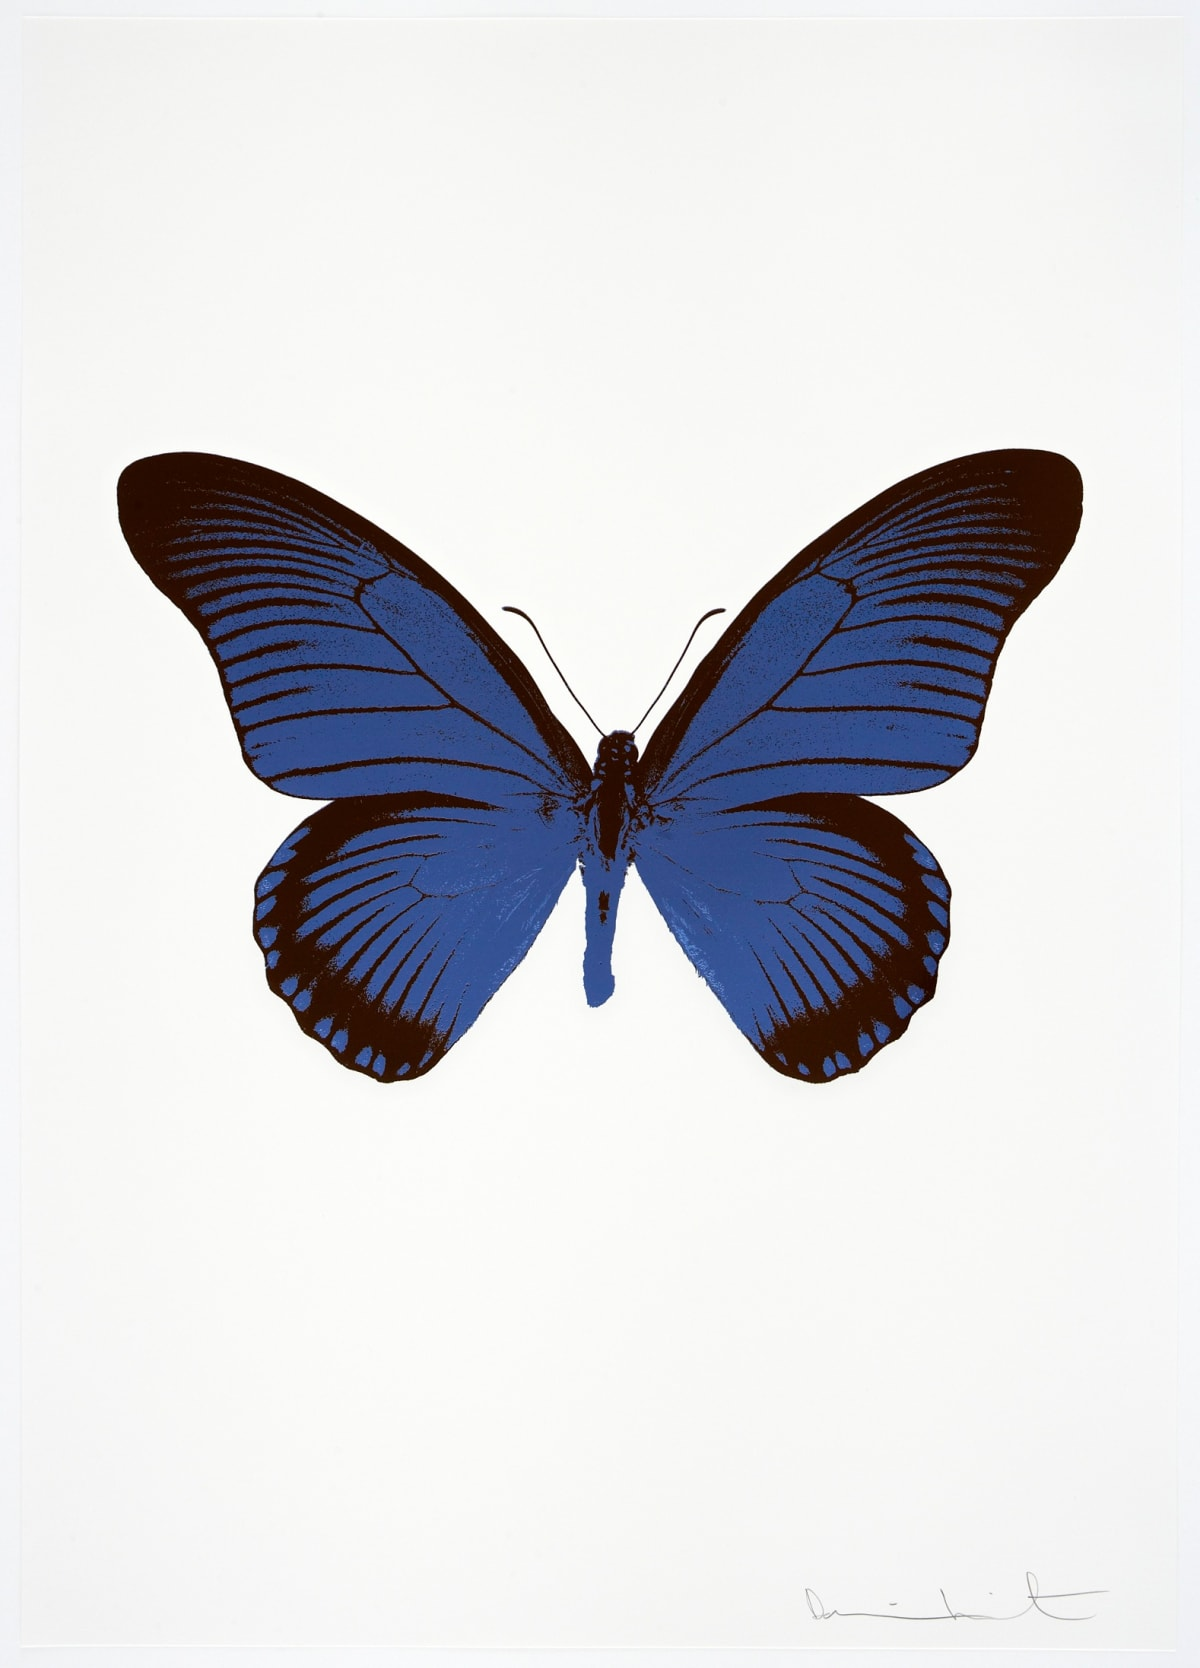 Damien Hirst The Souls IV - Frost Blue/Chocolate, 2010 2 colour foil block on 300gsm Arches 88 archival paper. Signed and numbered. Published by Paul Stolper and Other Criteria 72 x 51cm OC7997 / 1418-20 Edition of 15